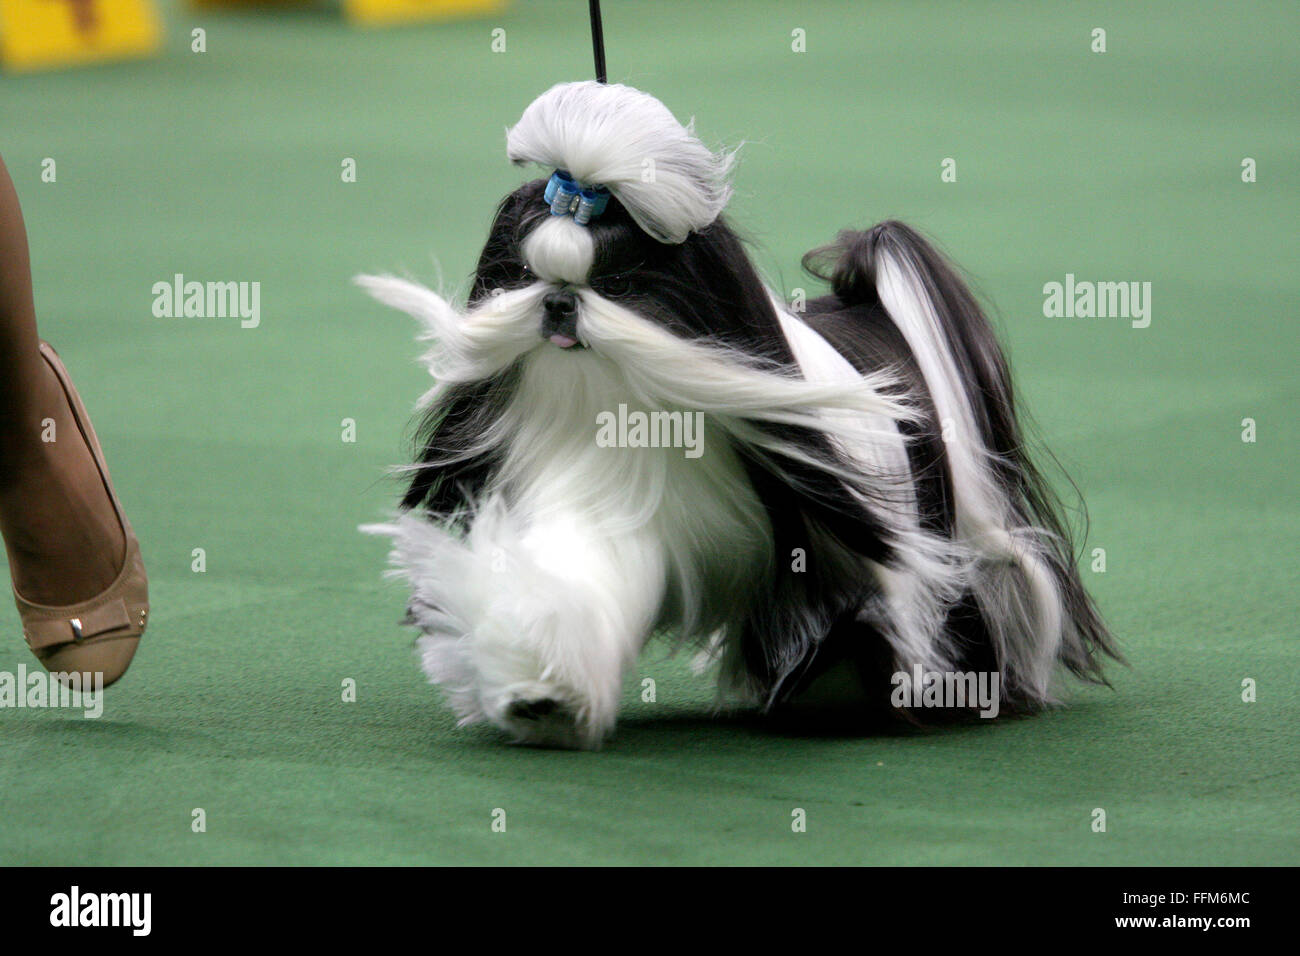 New York, USA. 15th February, 2016. GCH Wenrick's Don't Stop Believing, A Shih Tzu during the Toy group - Stock Image